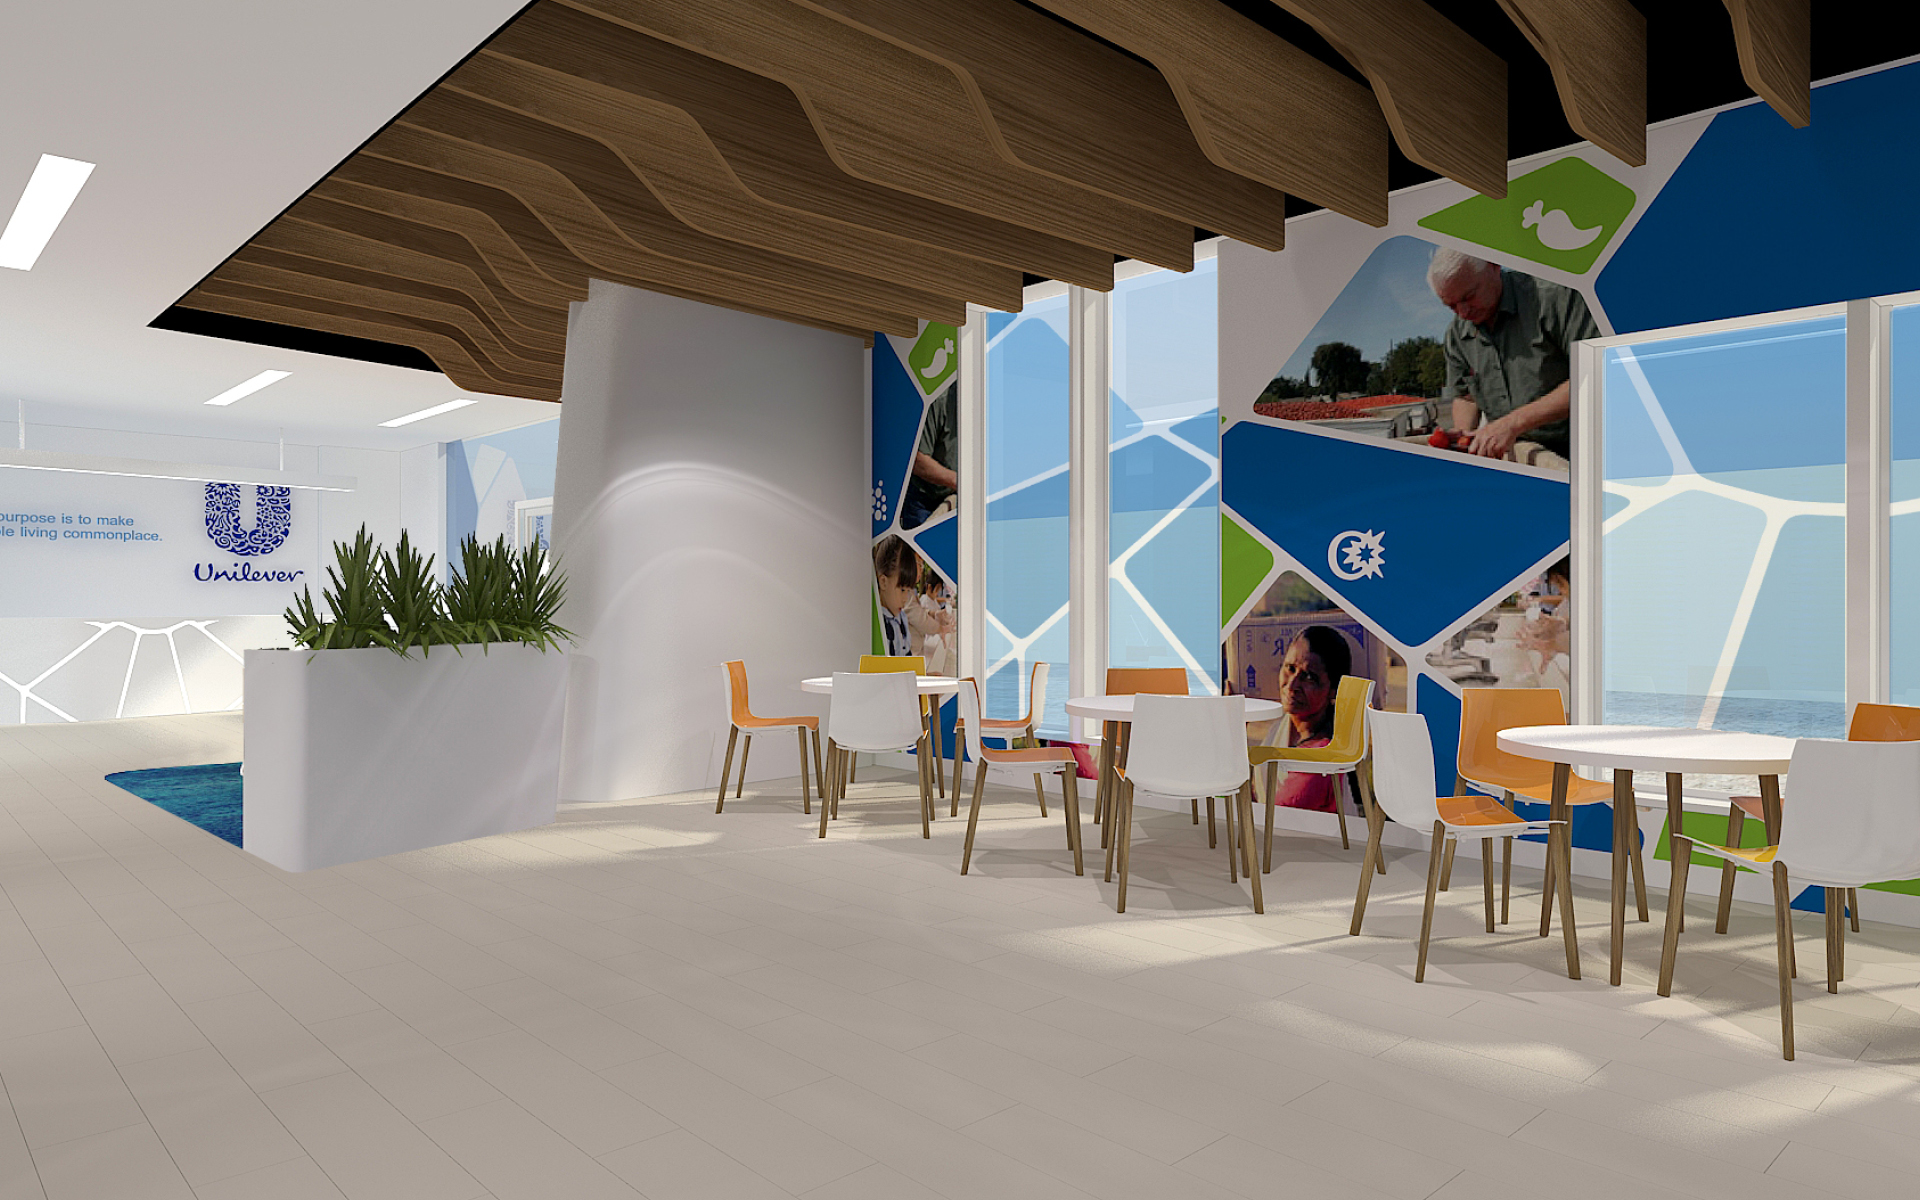 unilever office. Projects Facts \u0026 Figures. Client: Unilever Office N